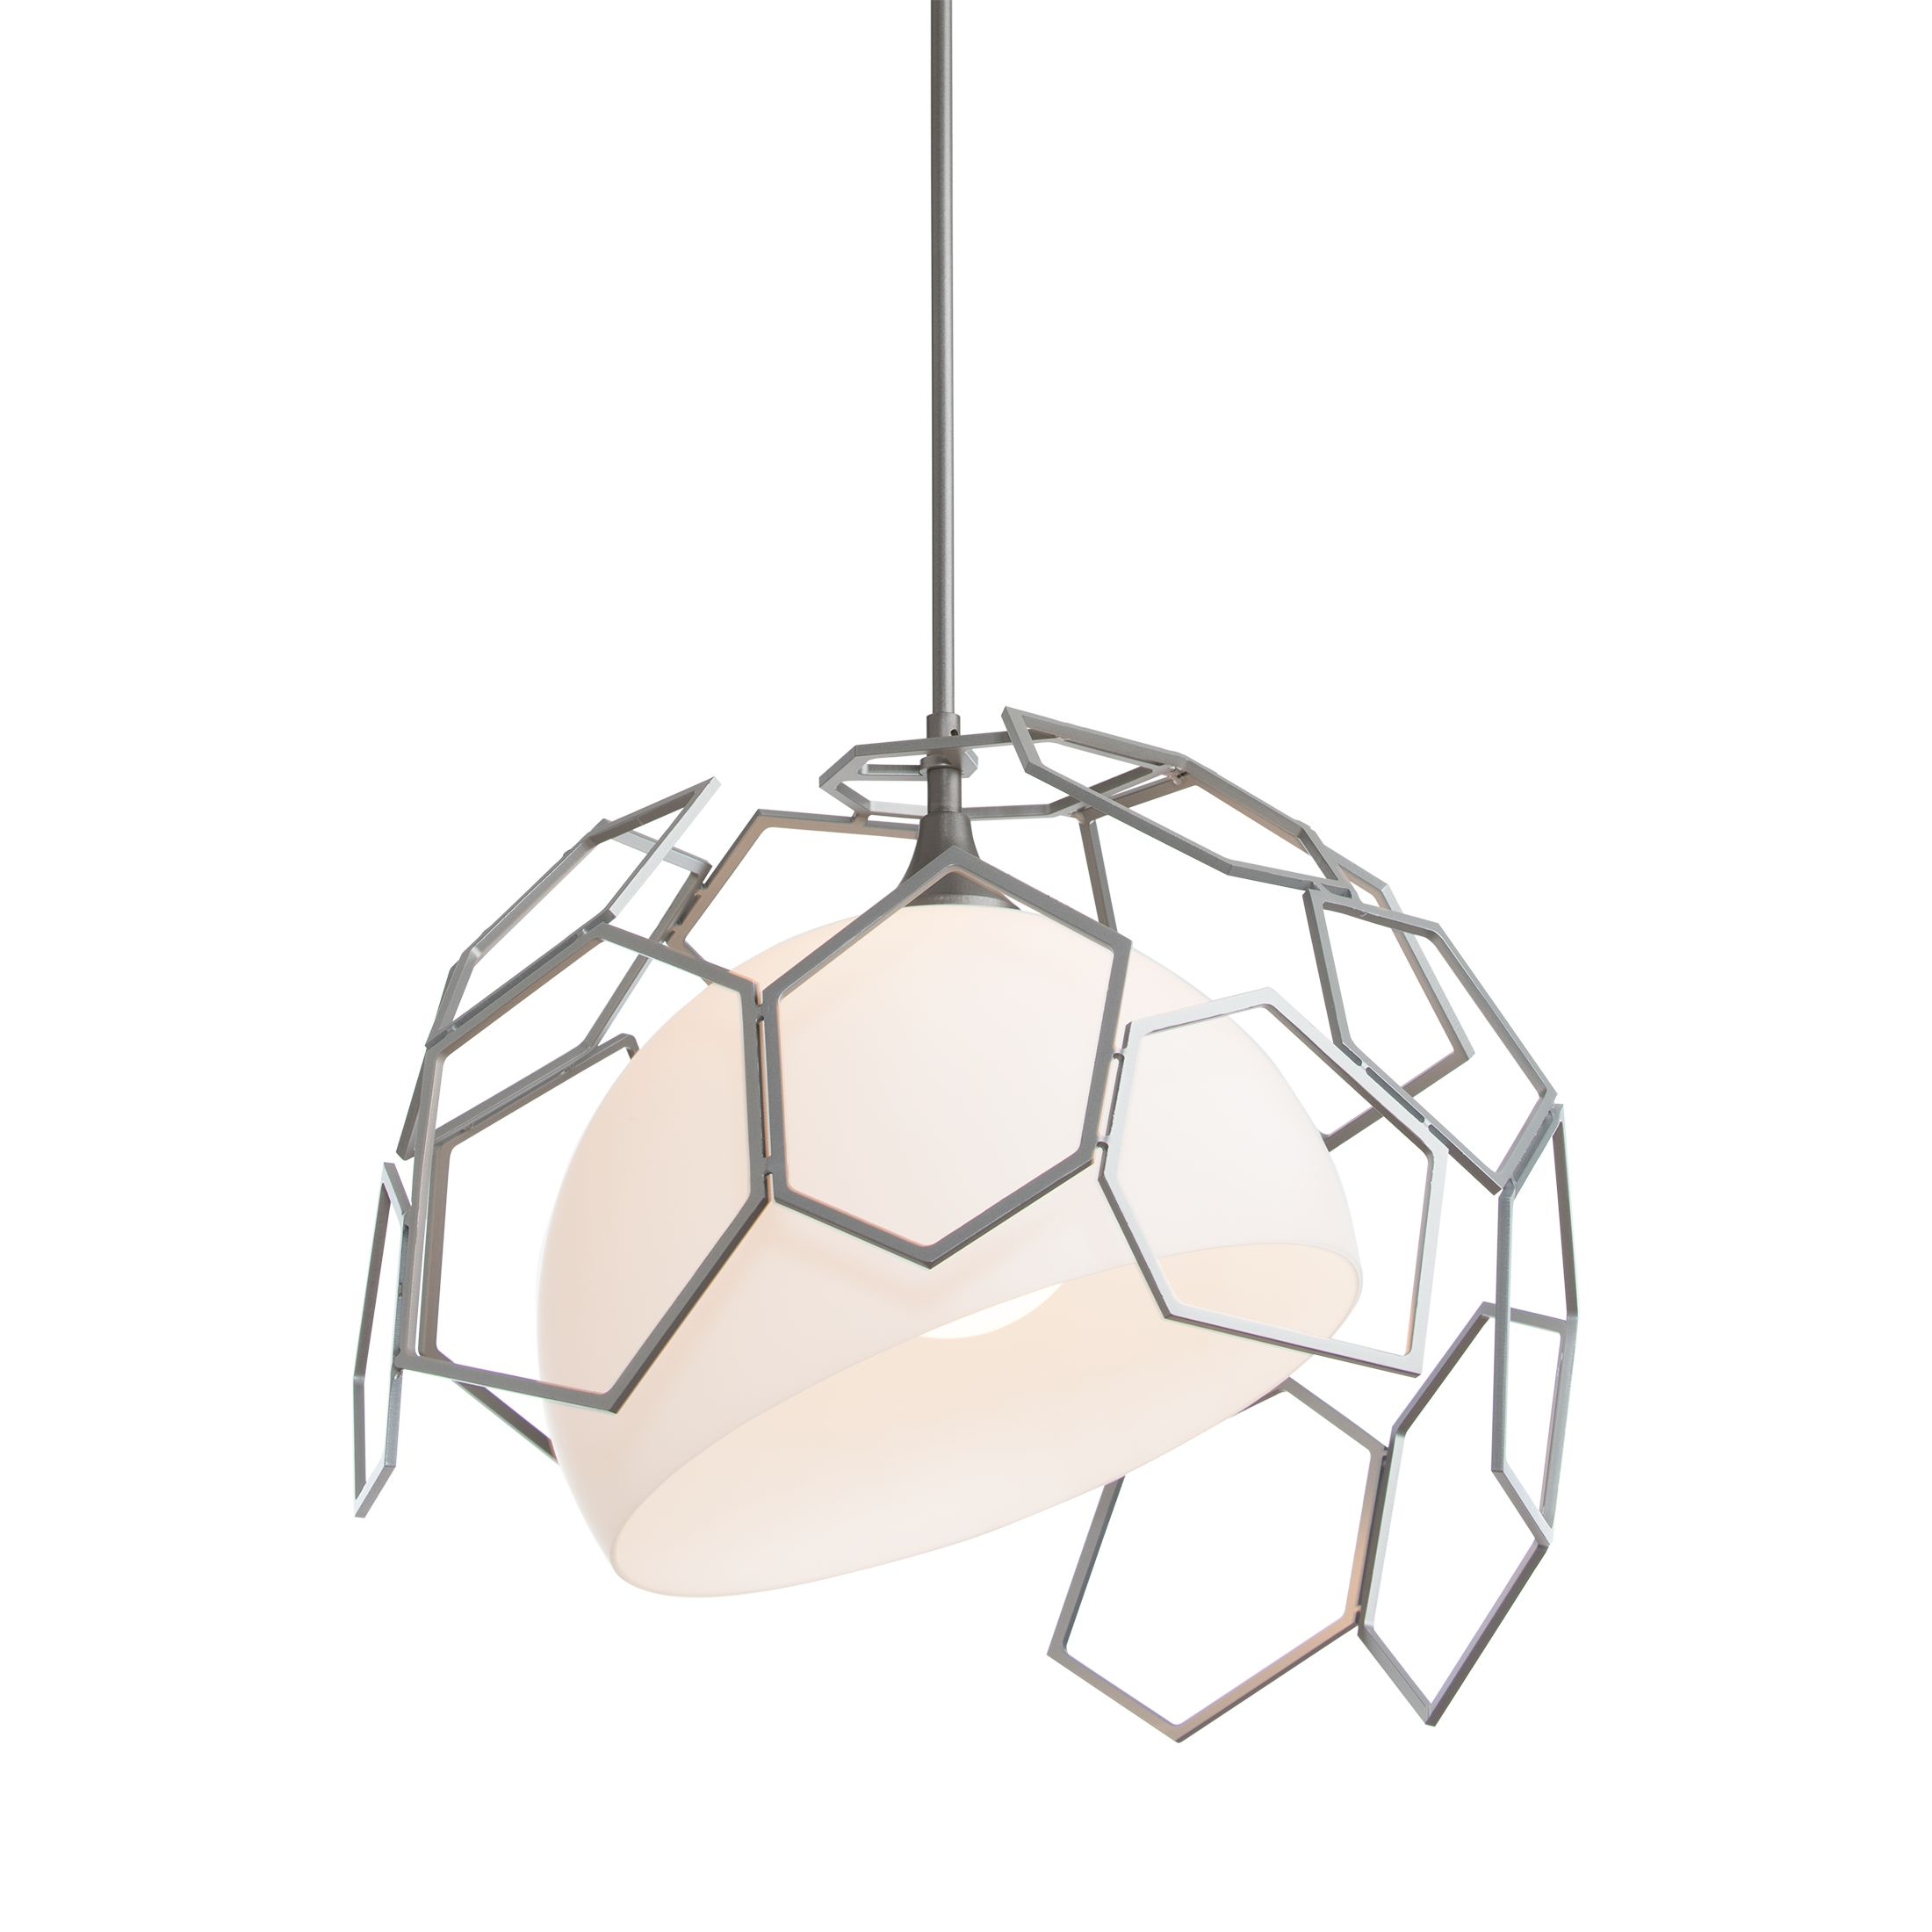 Product Detail: Umbra Outdoor Pendant